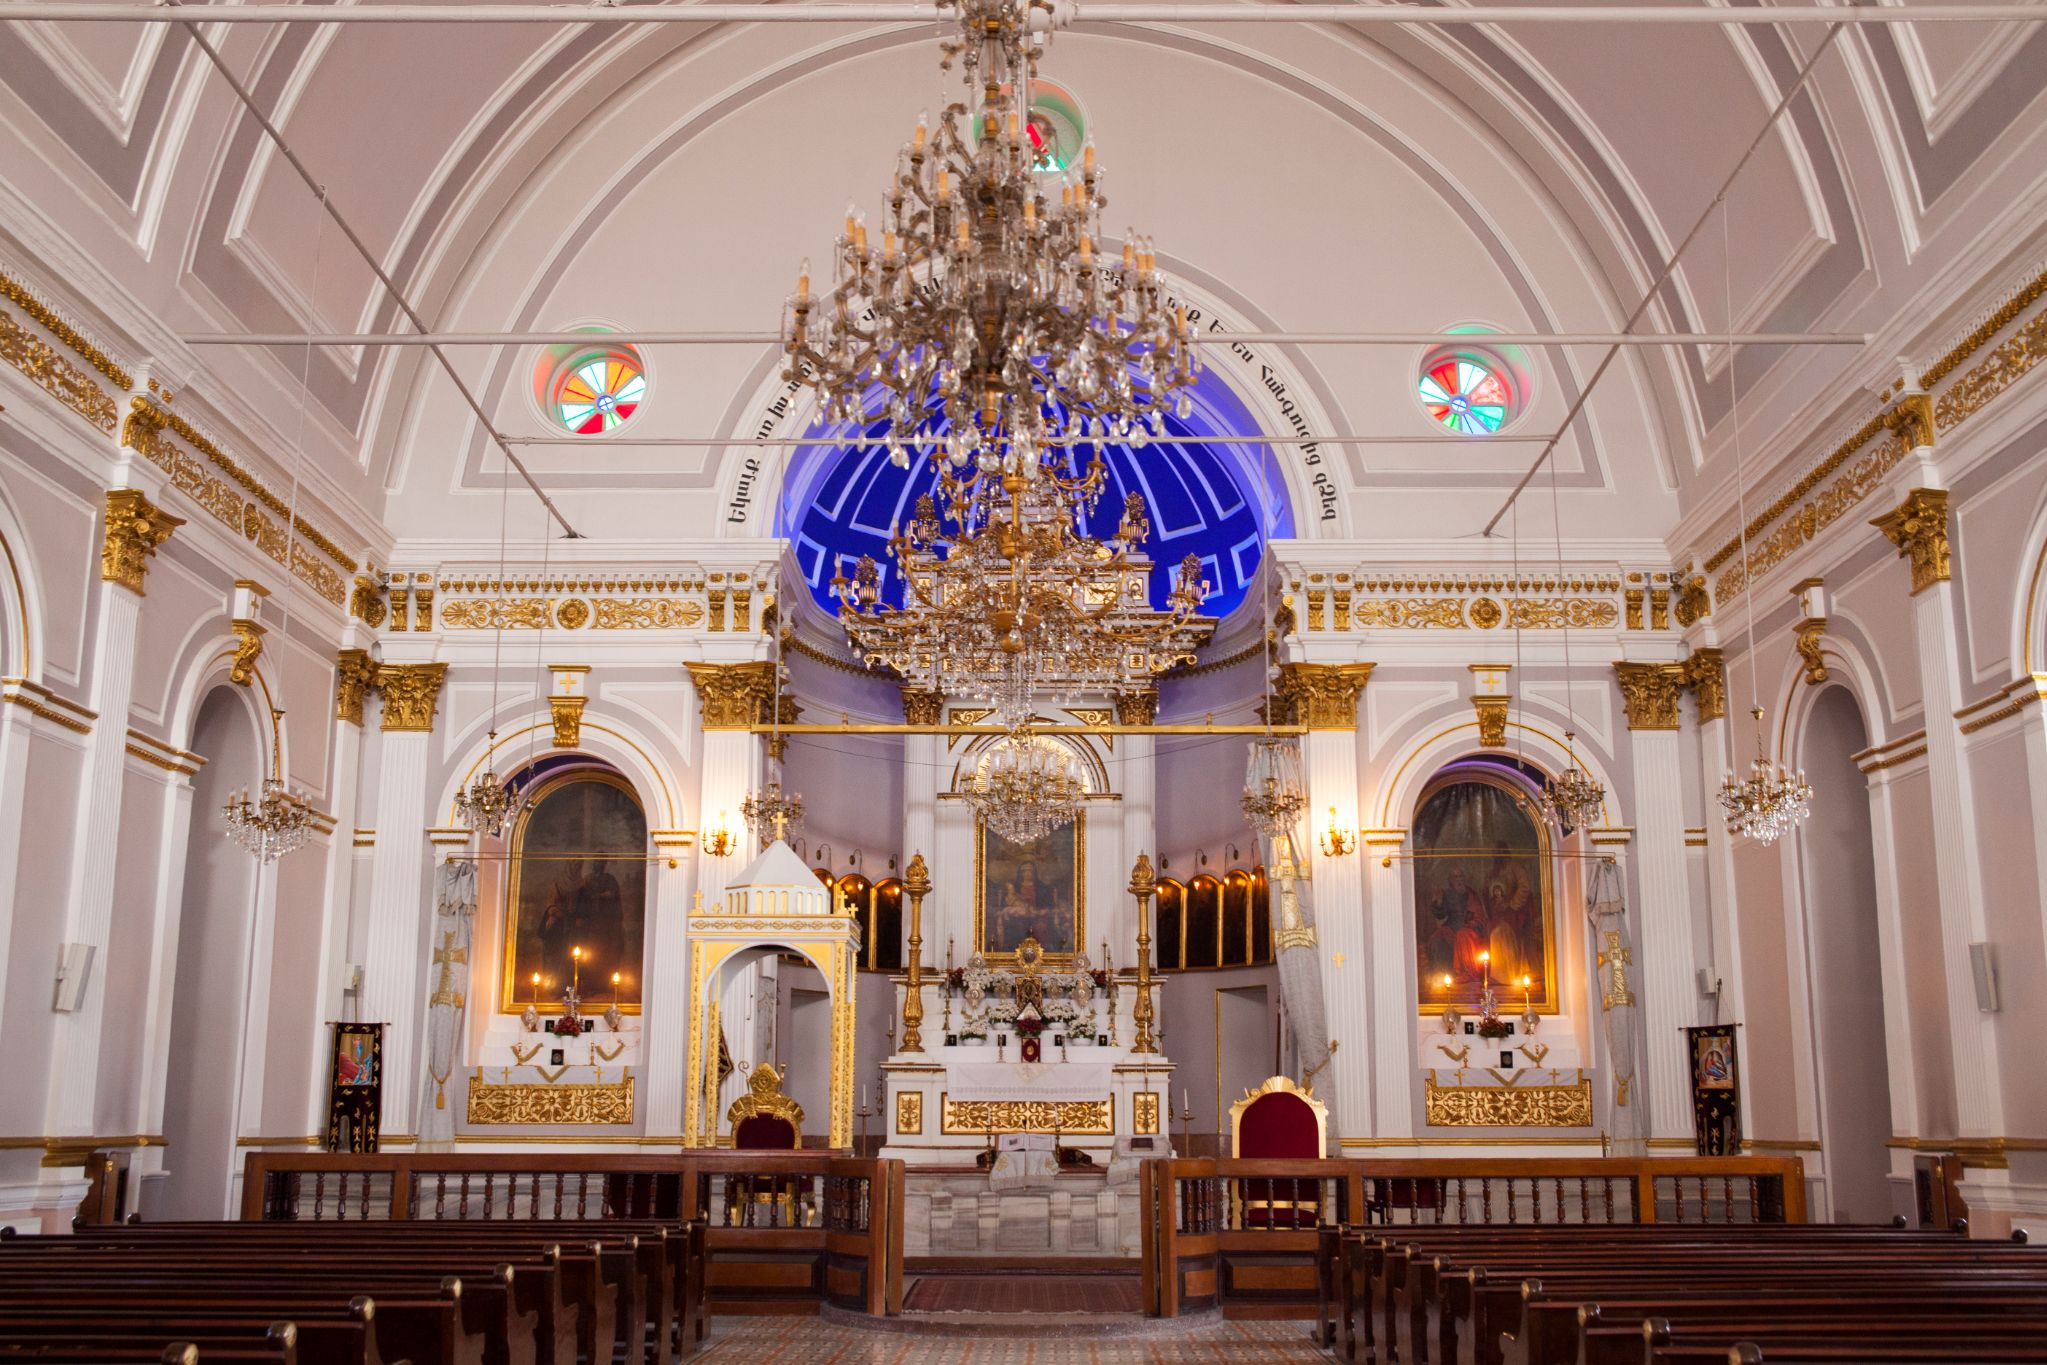 The place of worship was originally built as a Greek Orthodox Church in the 11th century